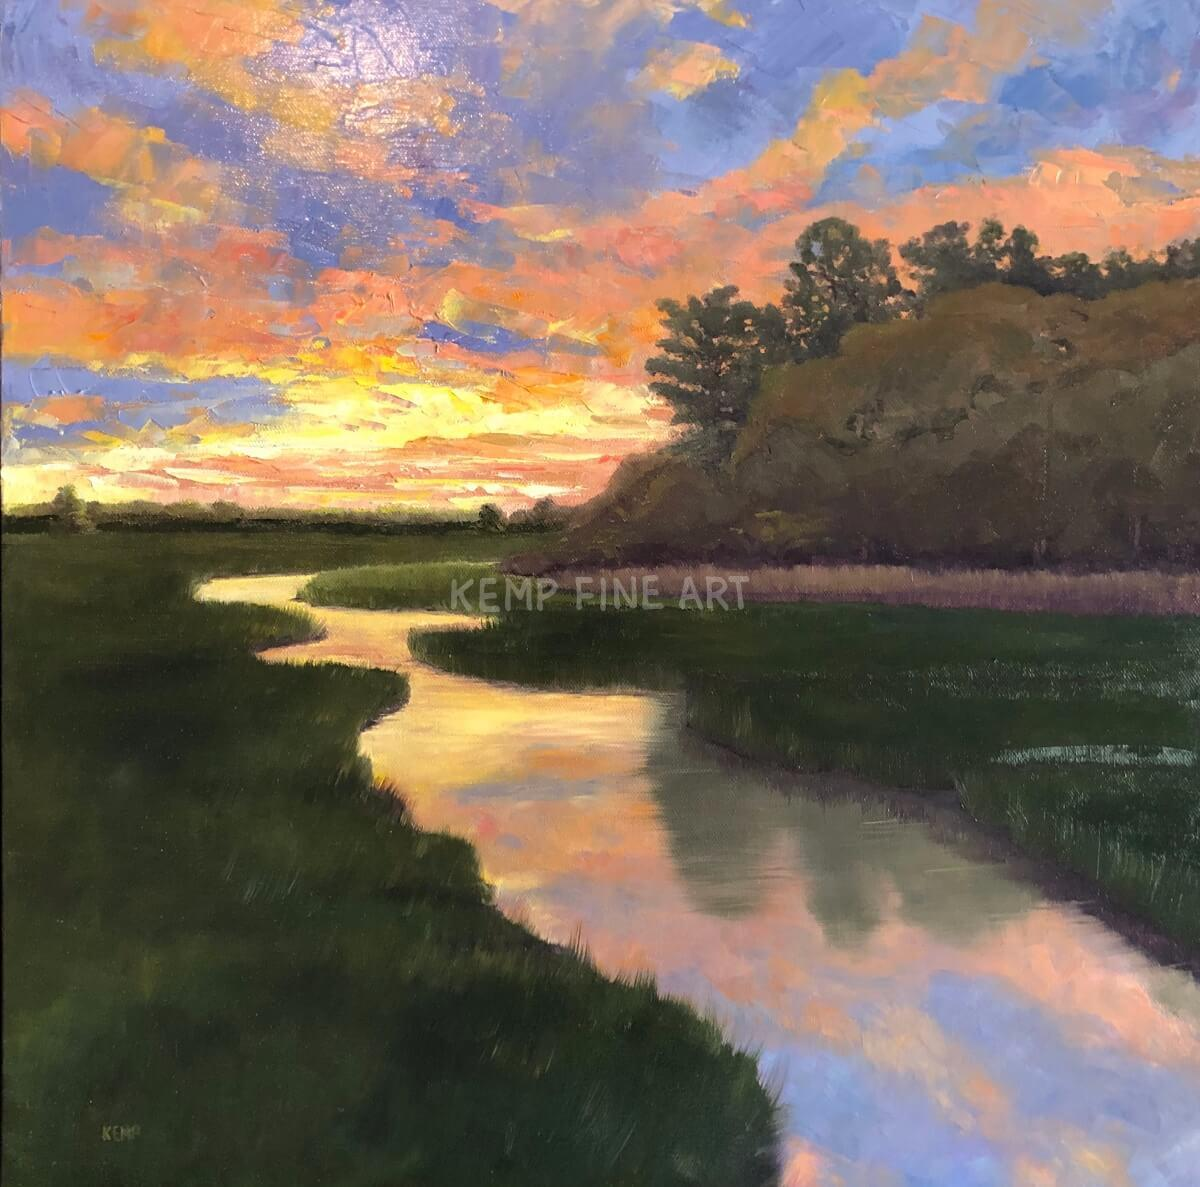 Later Summer Sunset | Oil on Canvas - by Jim Kemp